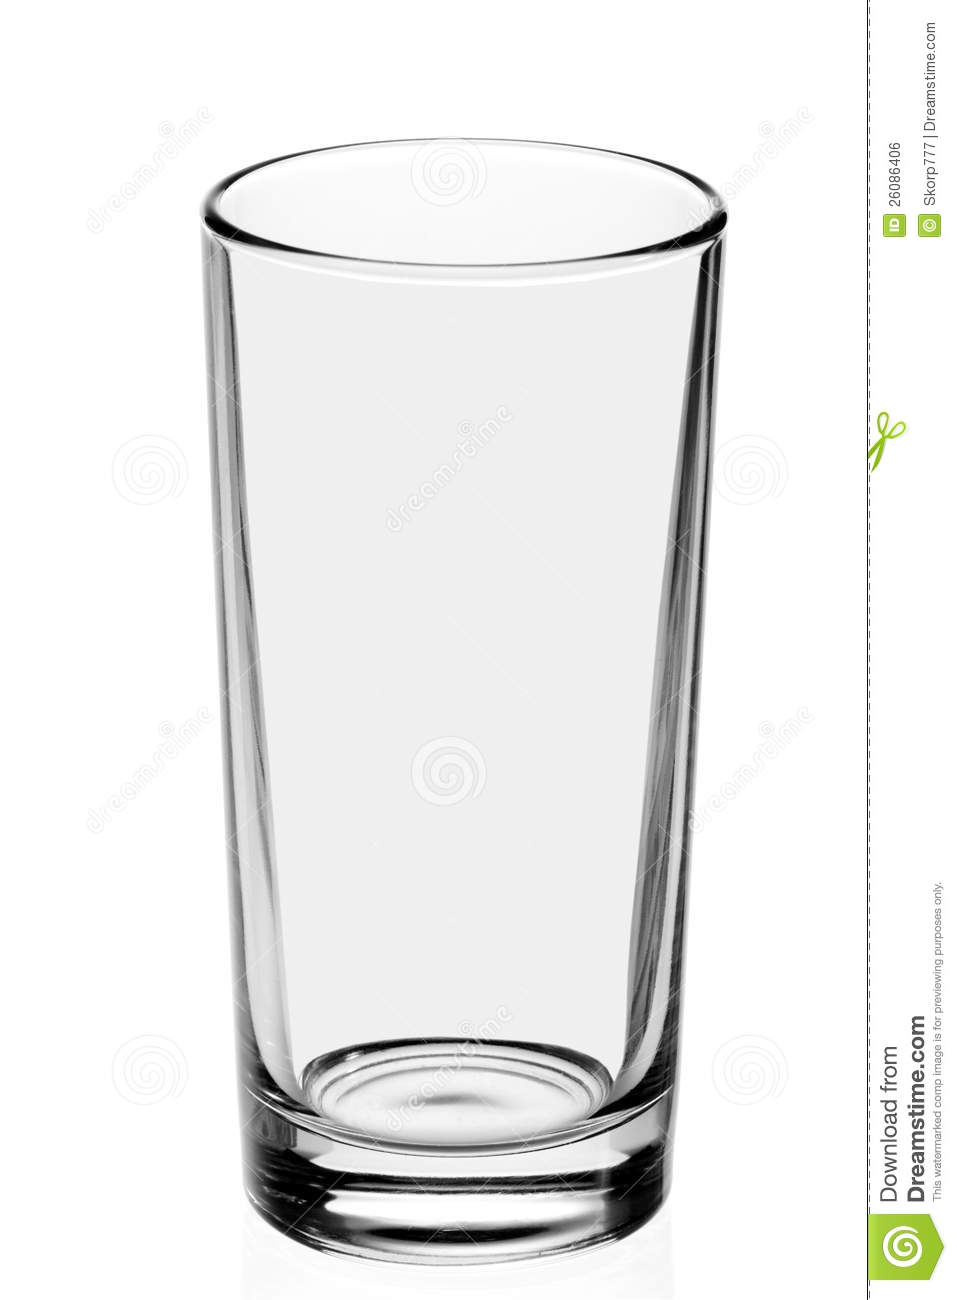 empty cup clipart clipart suggest clipart wine glass and steak clipart wine glass with ring in